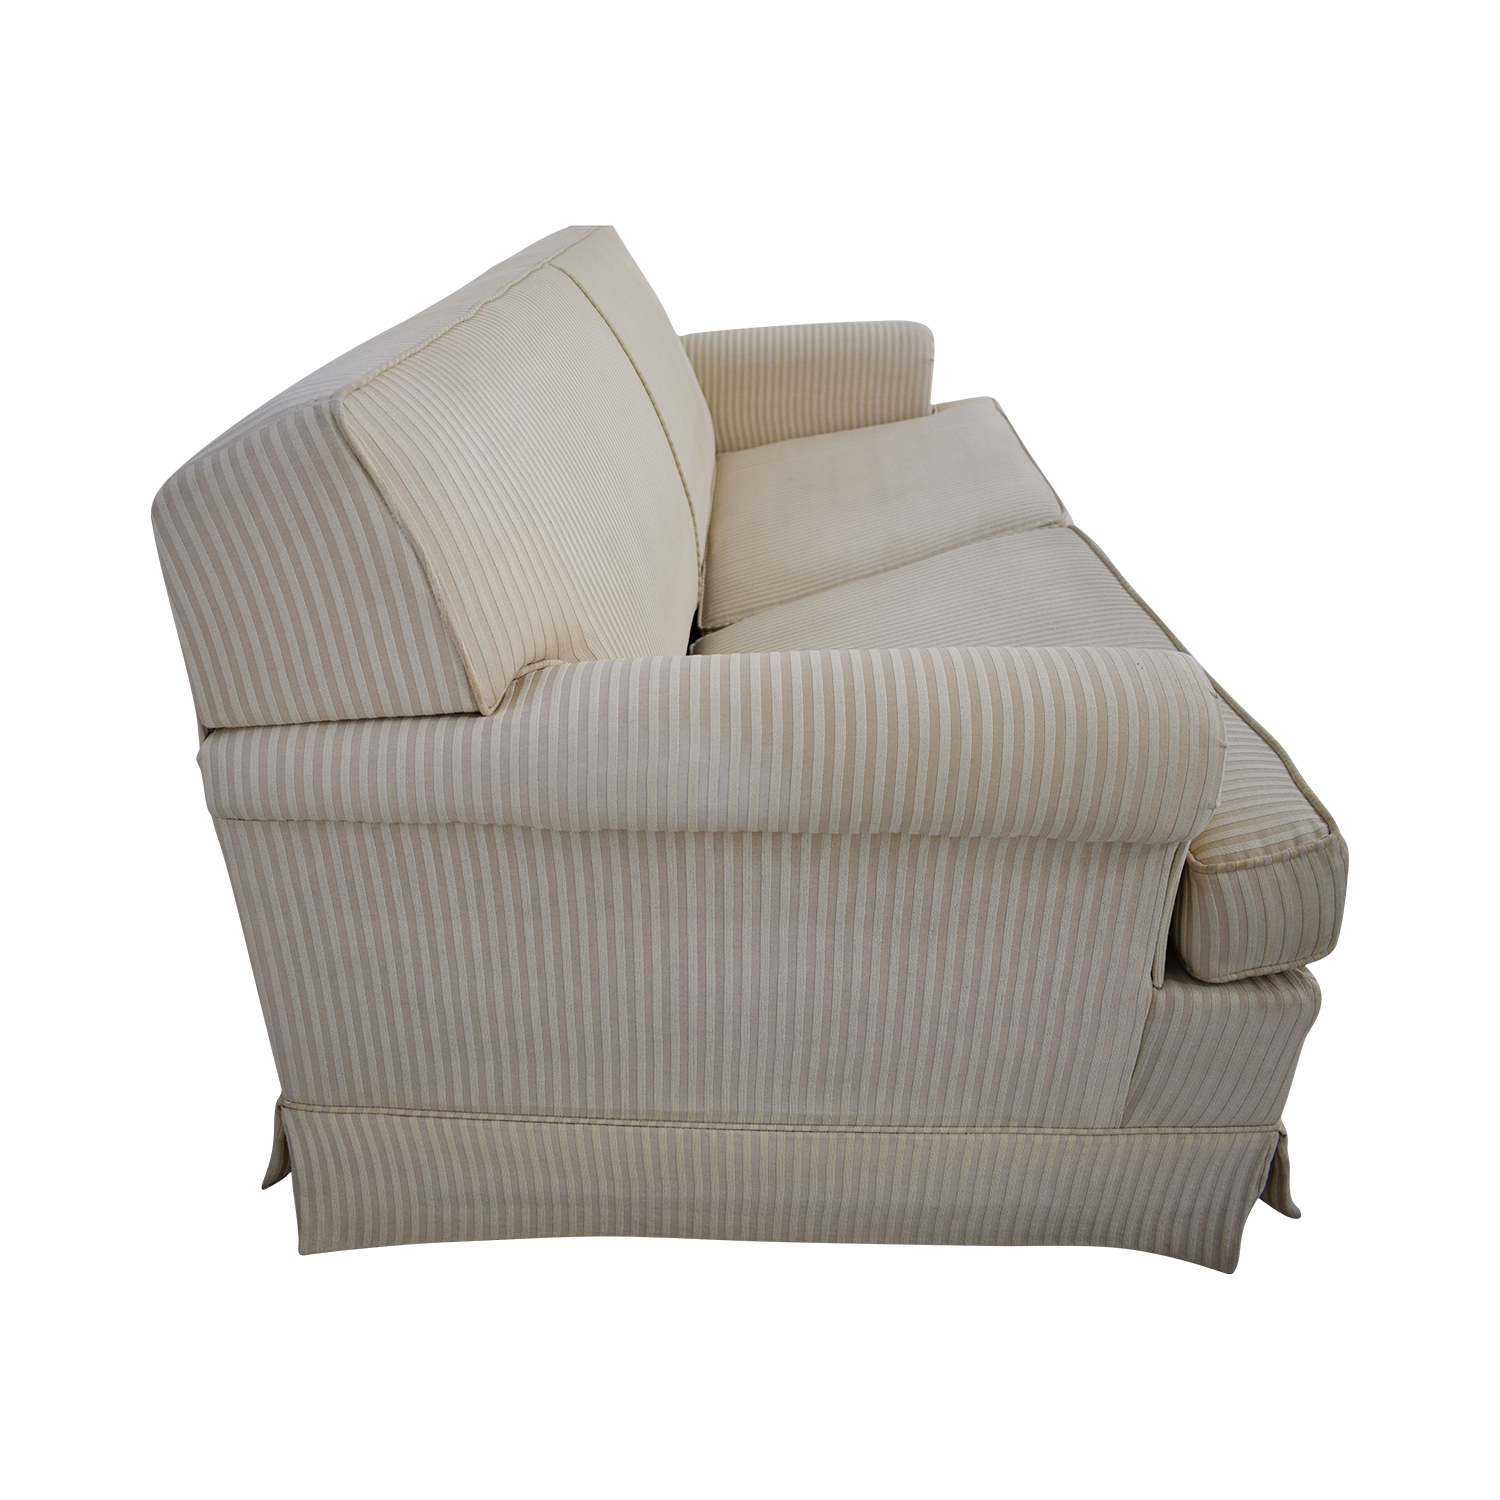 buy Stearns & Foster Stearns & Foster Two-Cushion Sleeper Sofa online